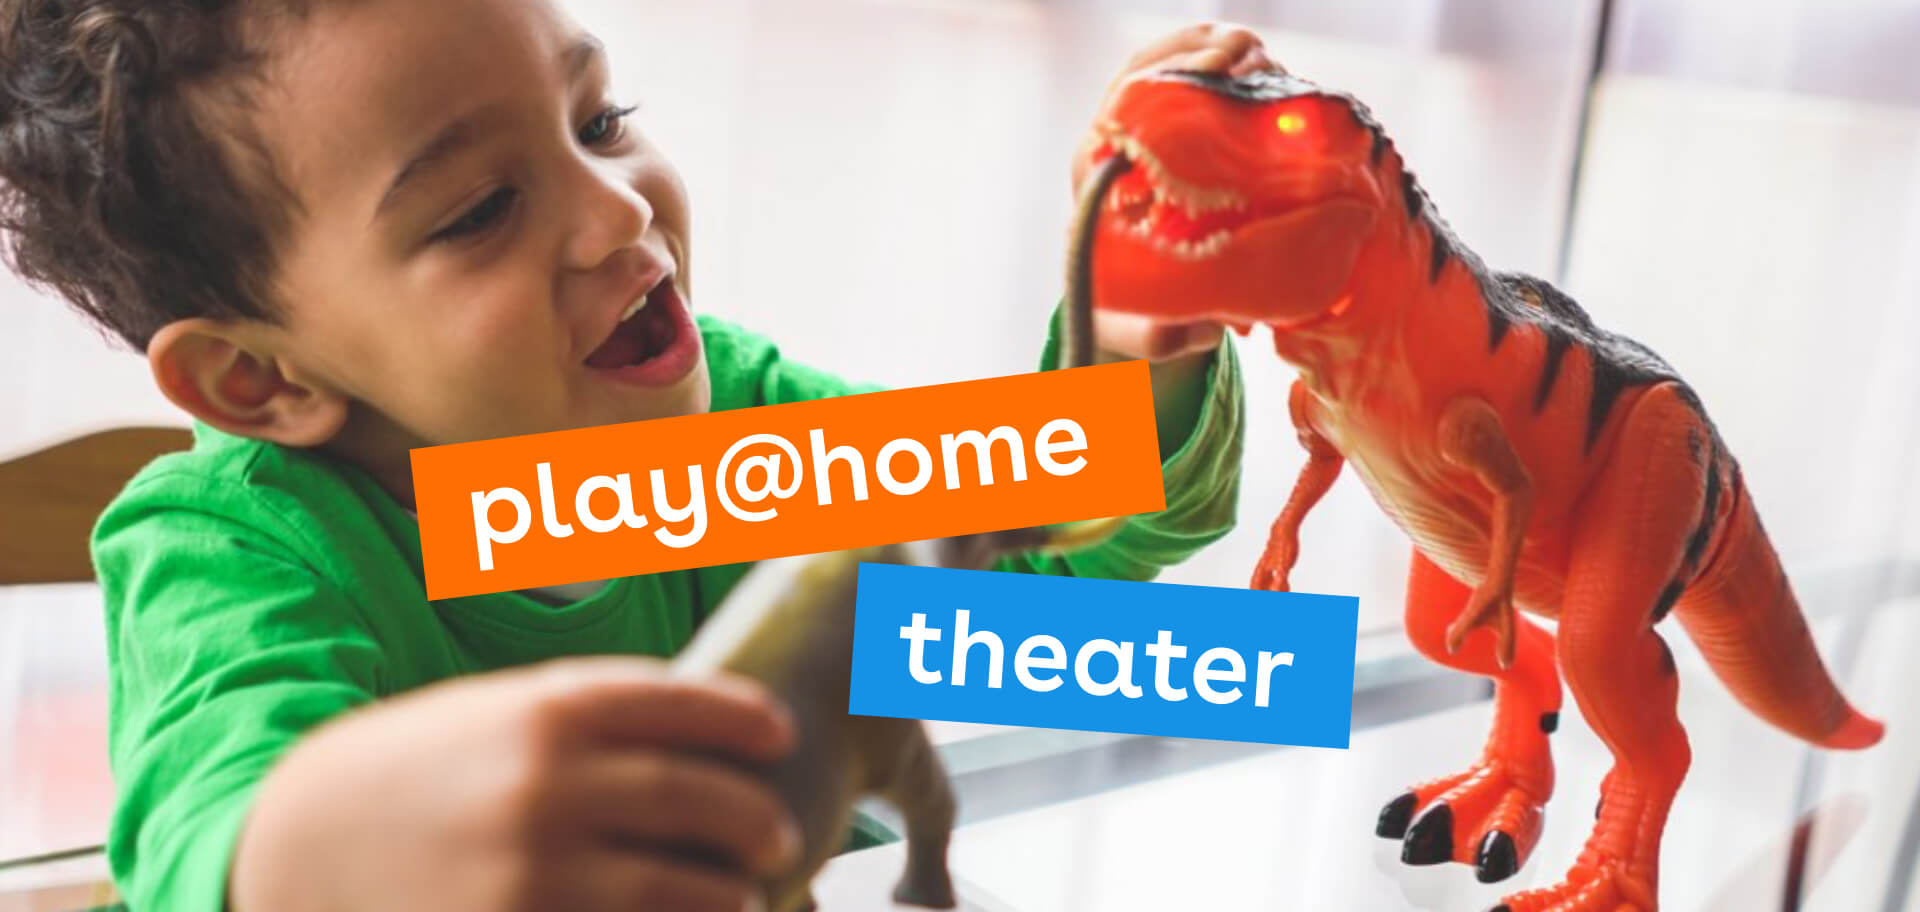 Toys R Us Play@Home Theater indoor play activities for kids